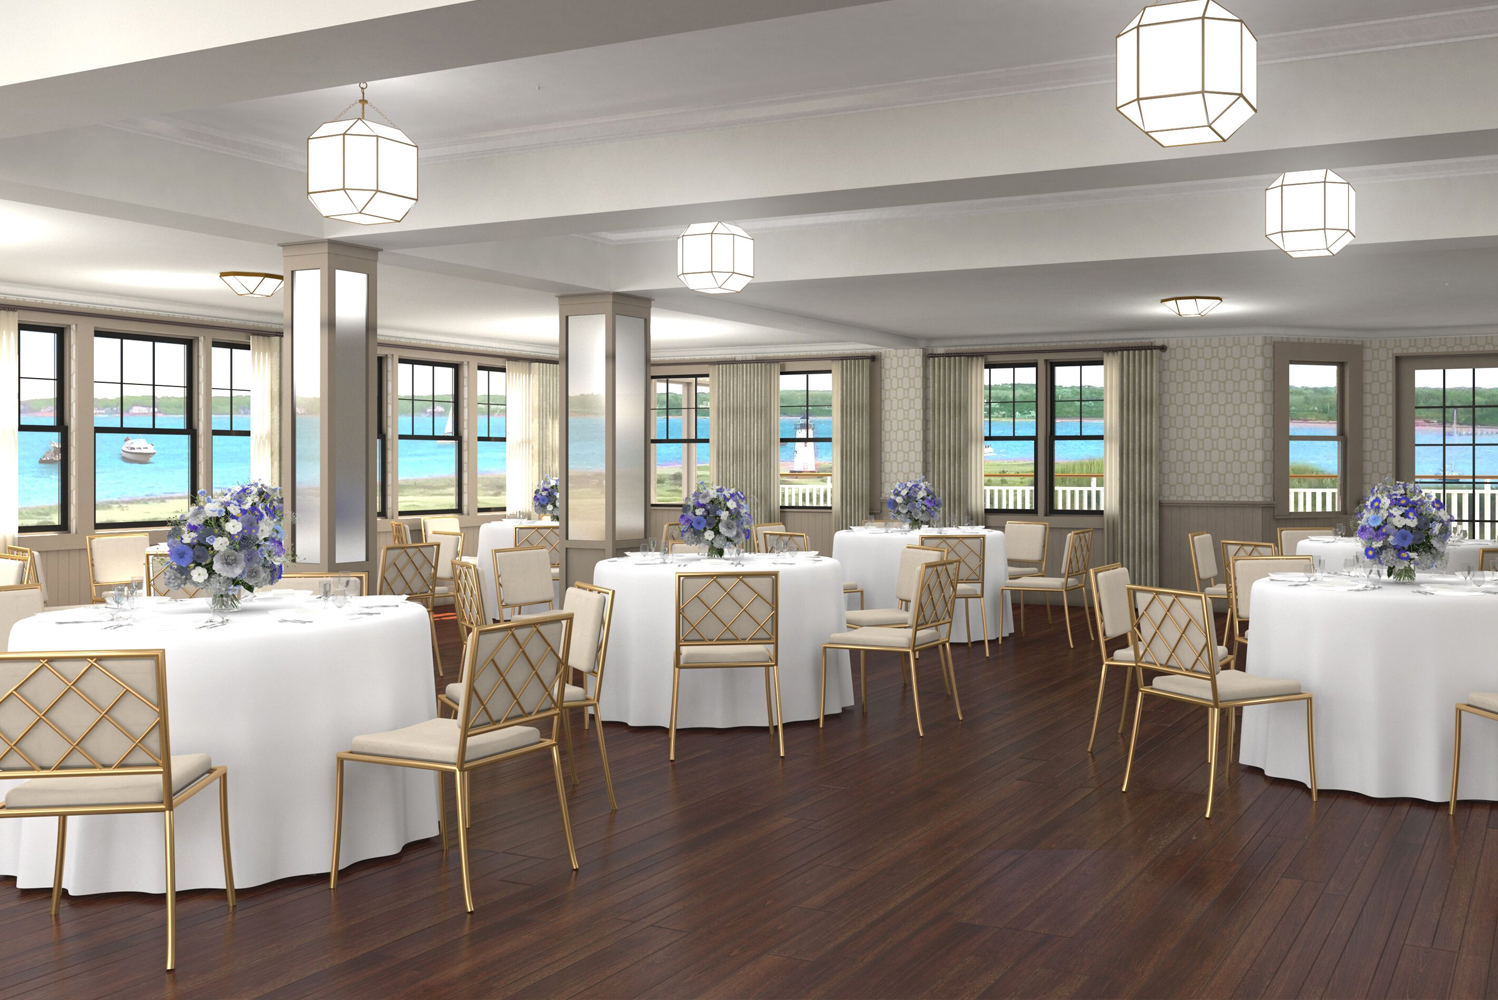 New wood floors, lighting and wood-trimmed mirrors in the Edgartown Room will give the space an expansive appearance.